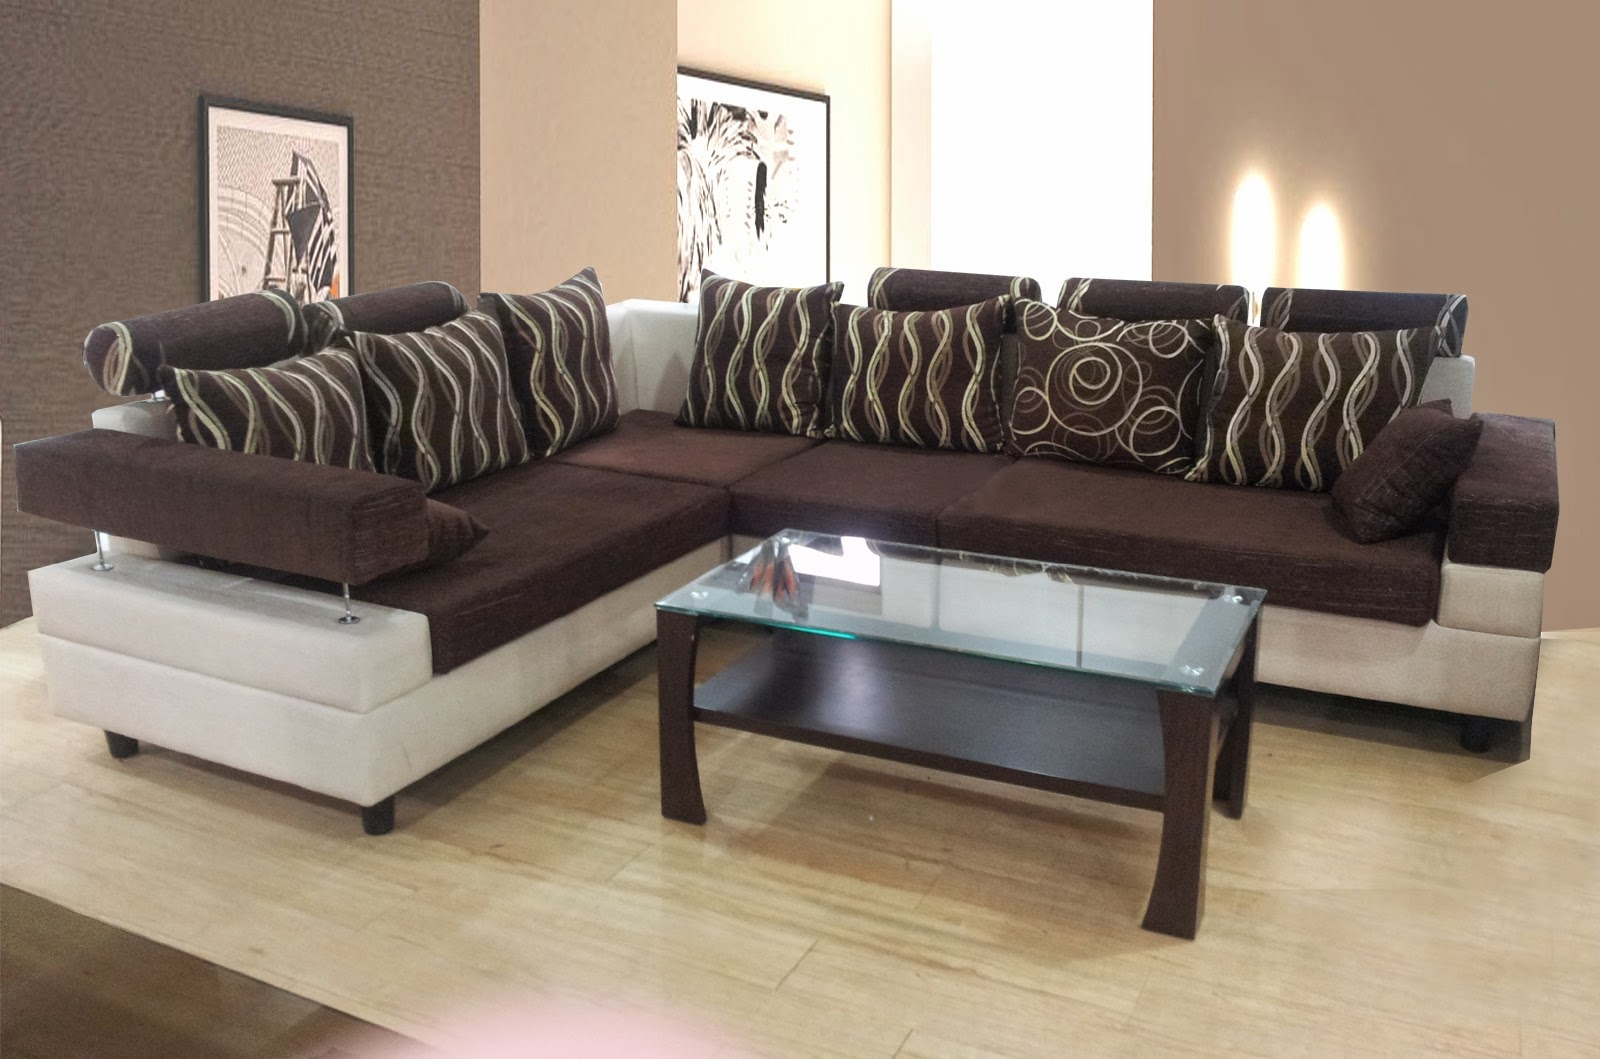 Latest sofa designs in kenya sofa design Sofa design ideas photos